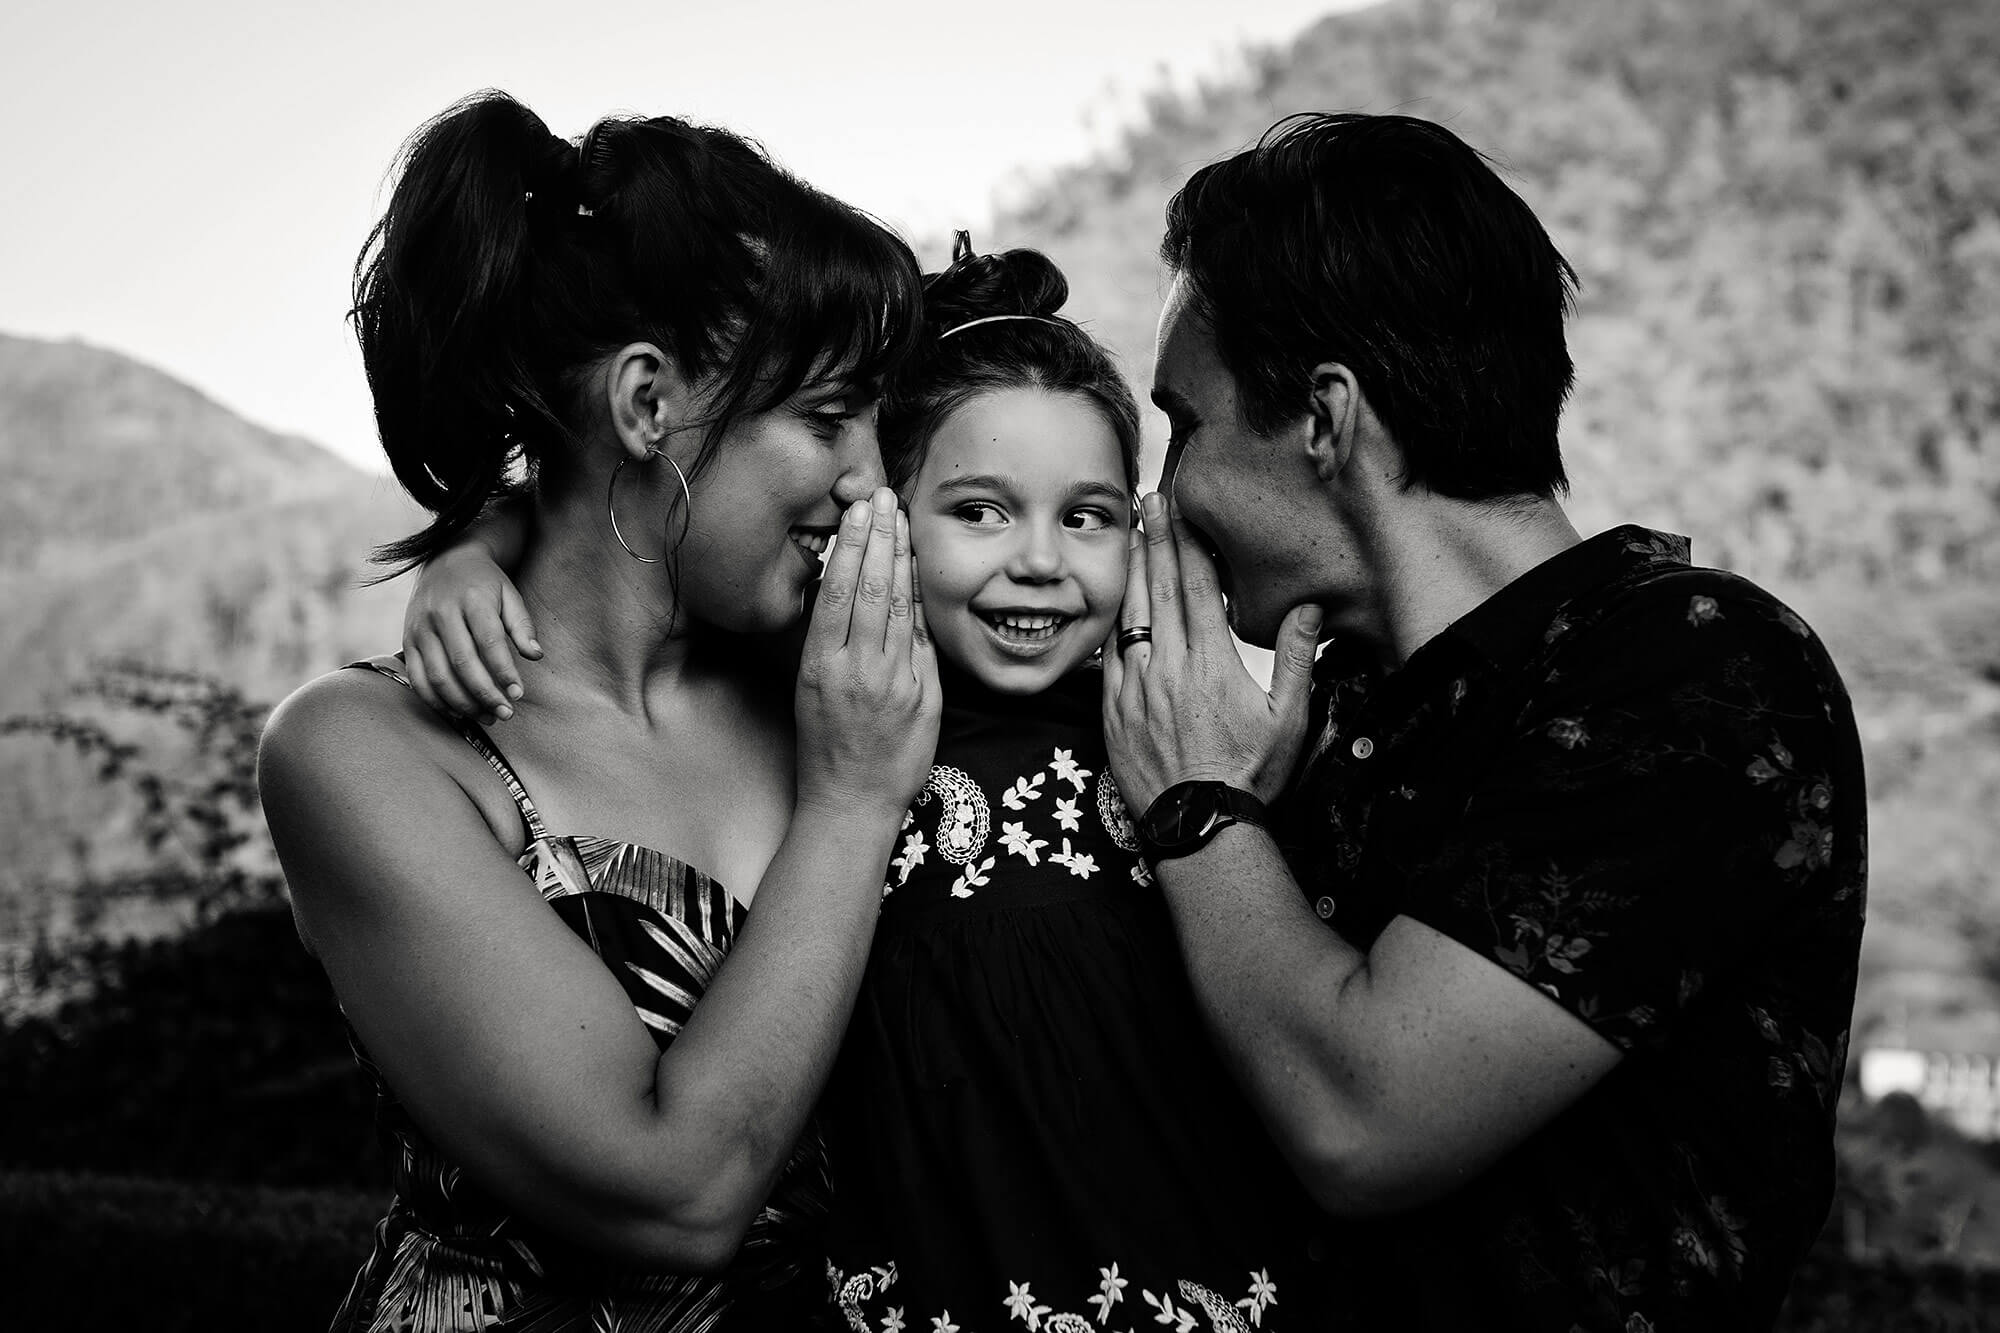 Most Frequently Questions about Family Photographer in Italy